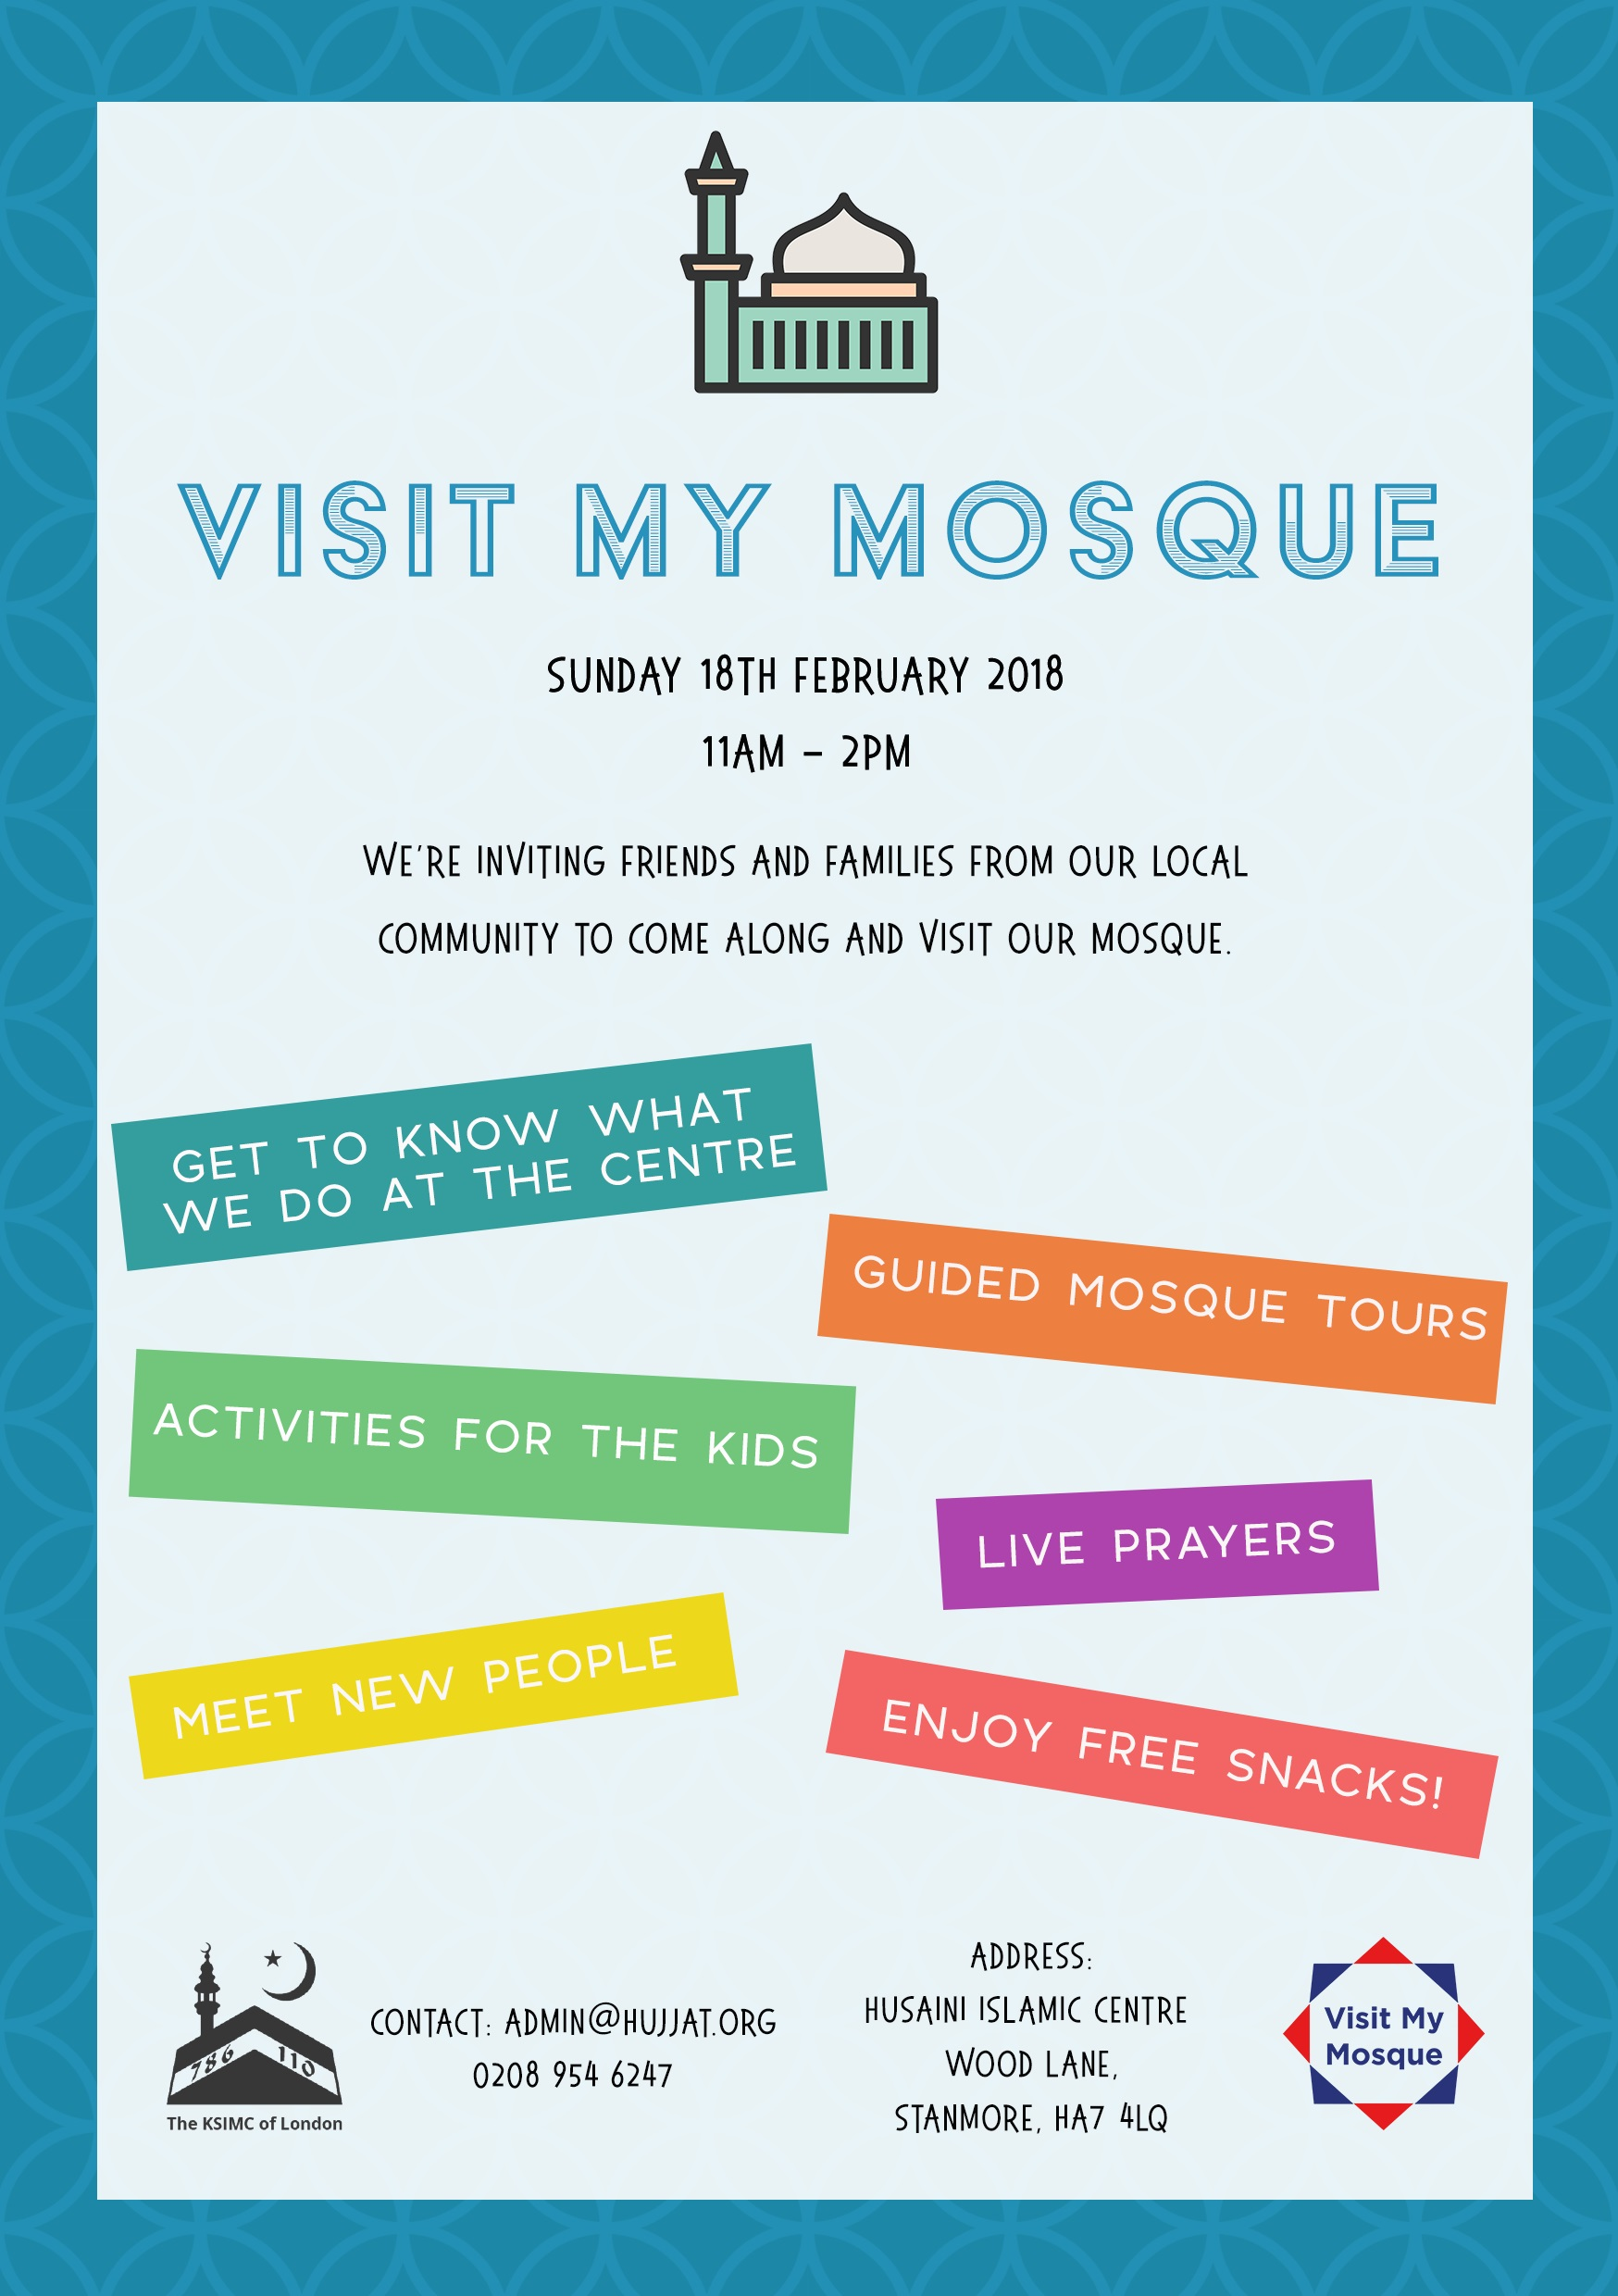 visit my mosque poster2 002